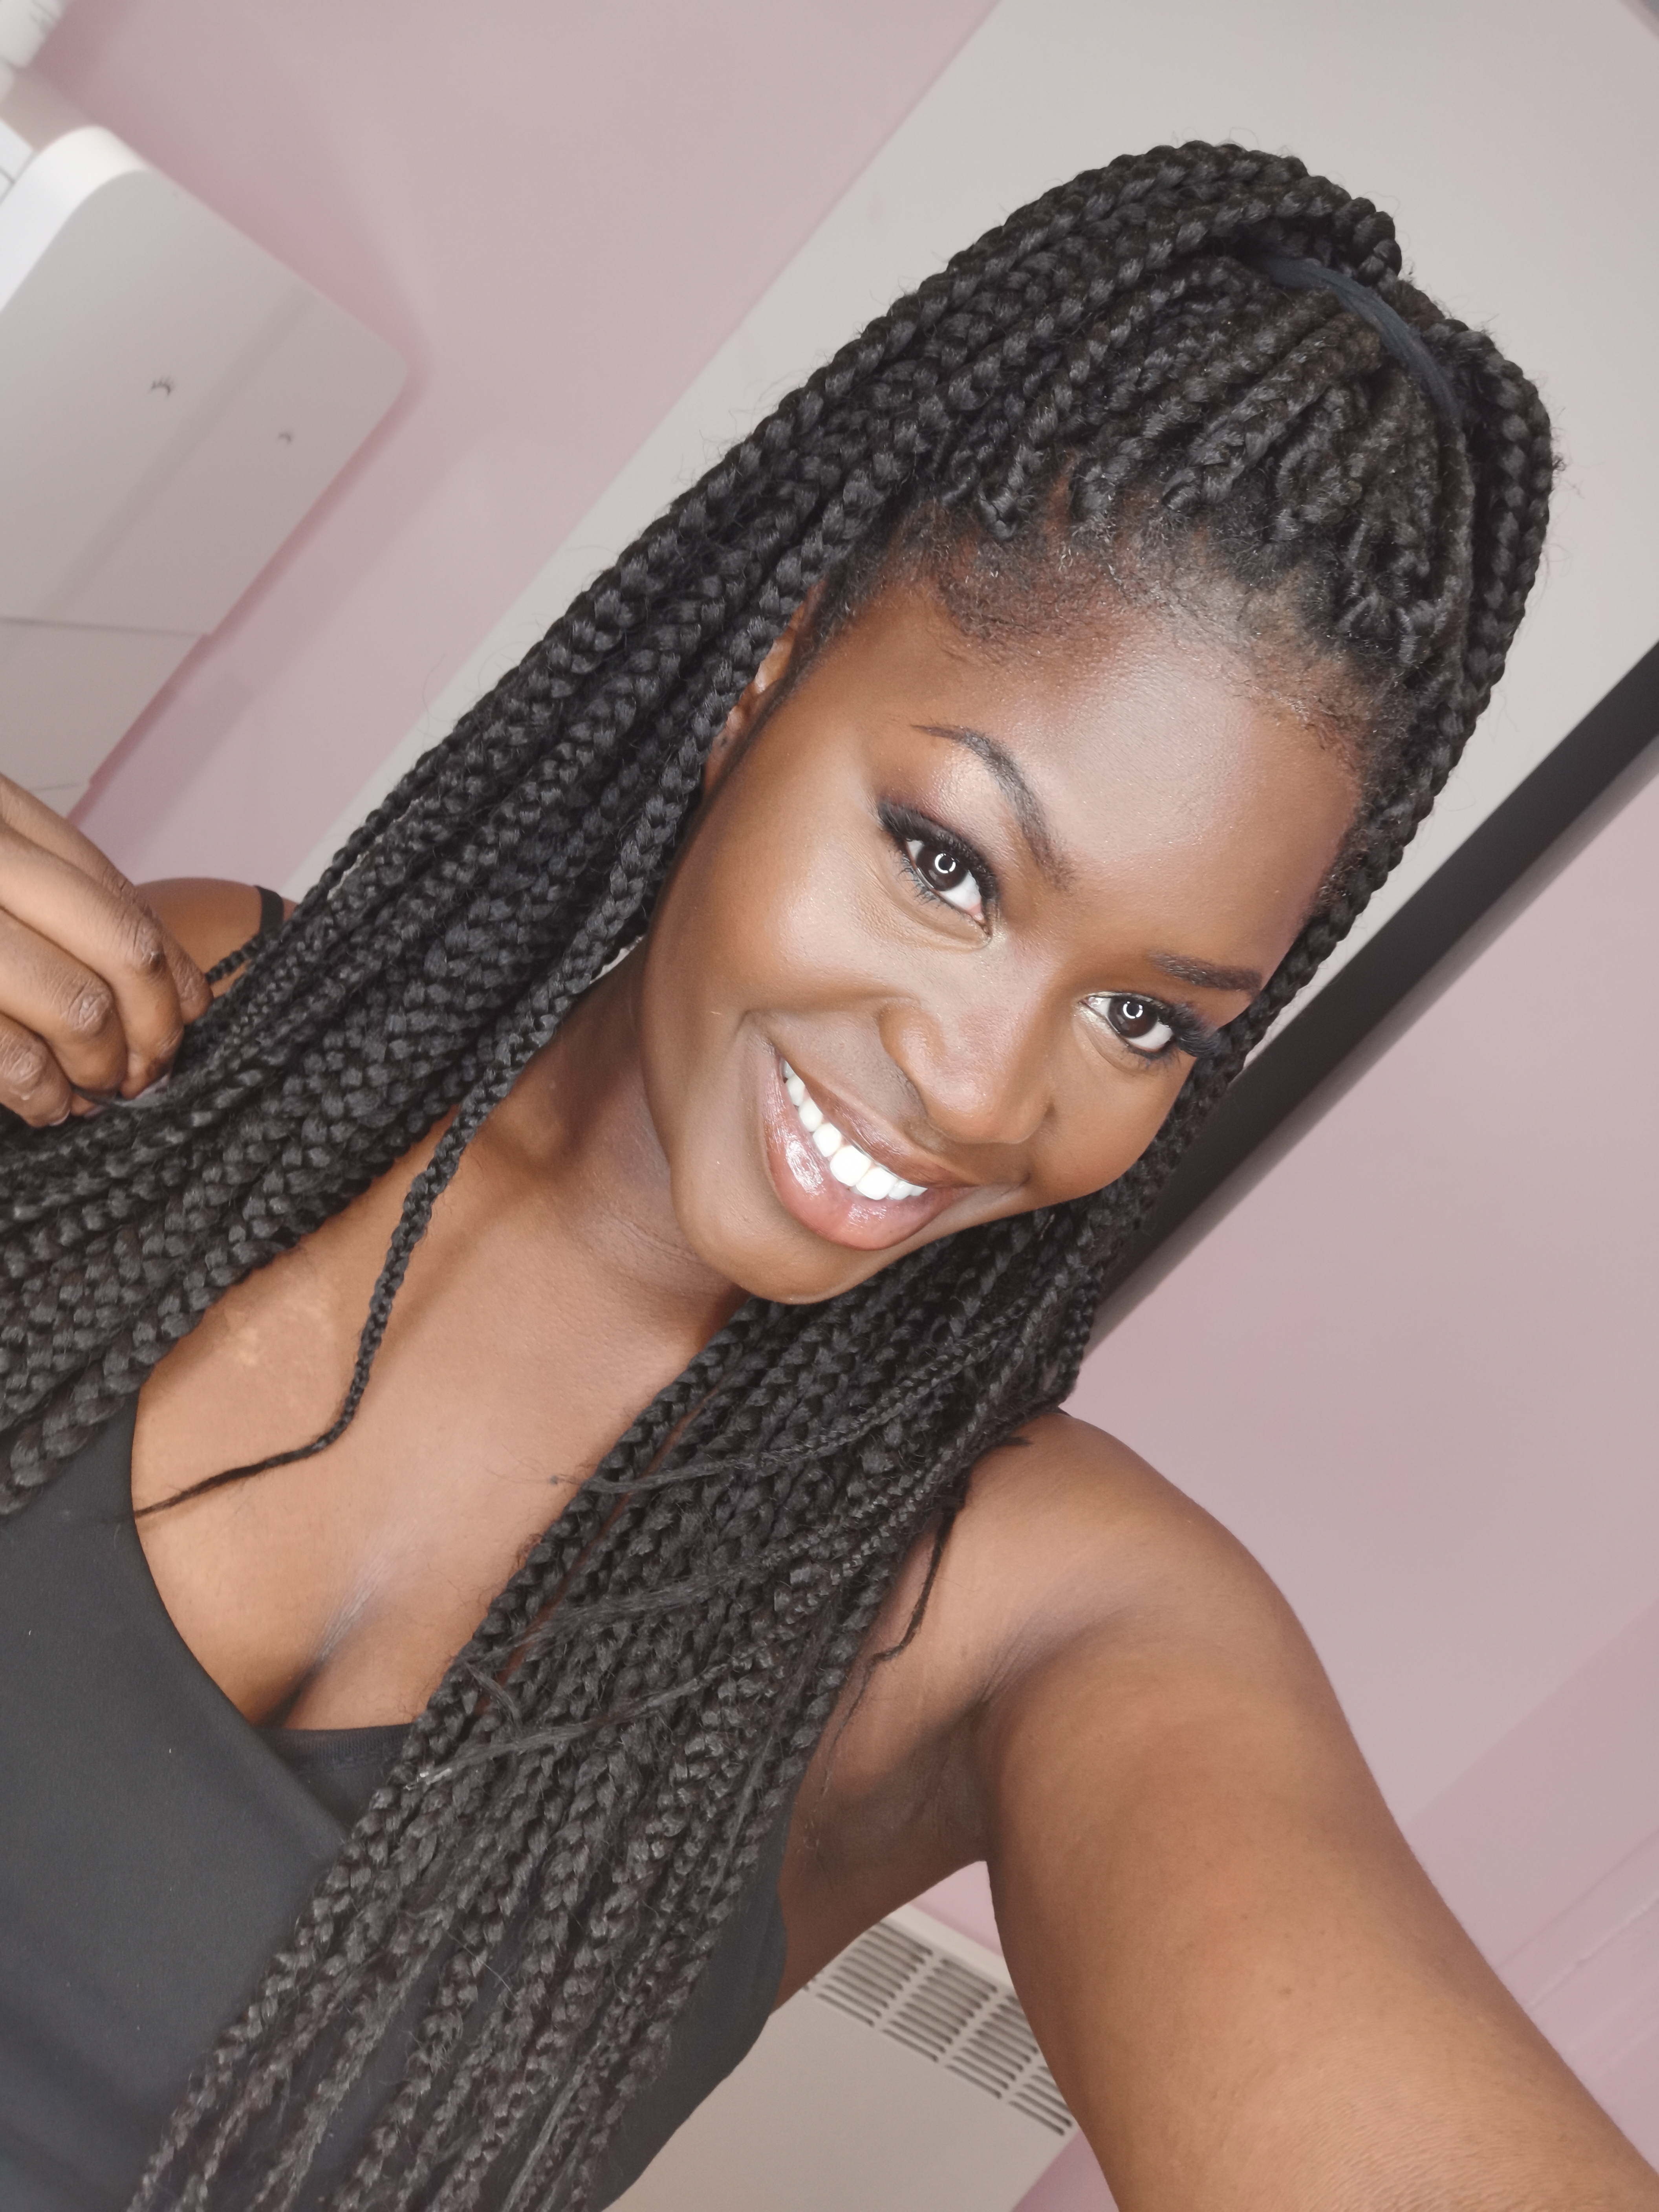 salon de coiffure afro tresse tresses box braids crochet braids vanilles tissages paris 75 77 78 91 92 93 94 95 GPLHSMBS